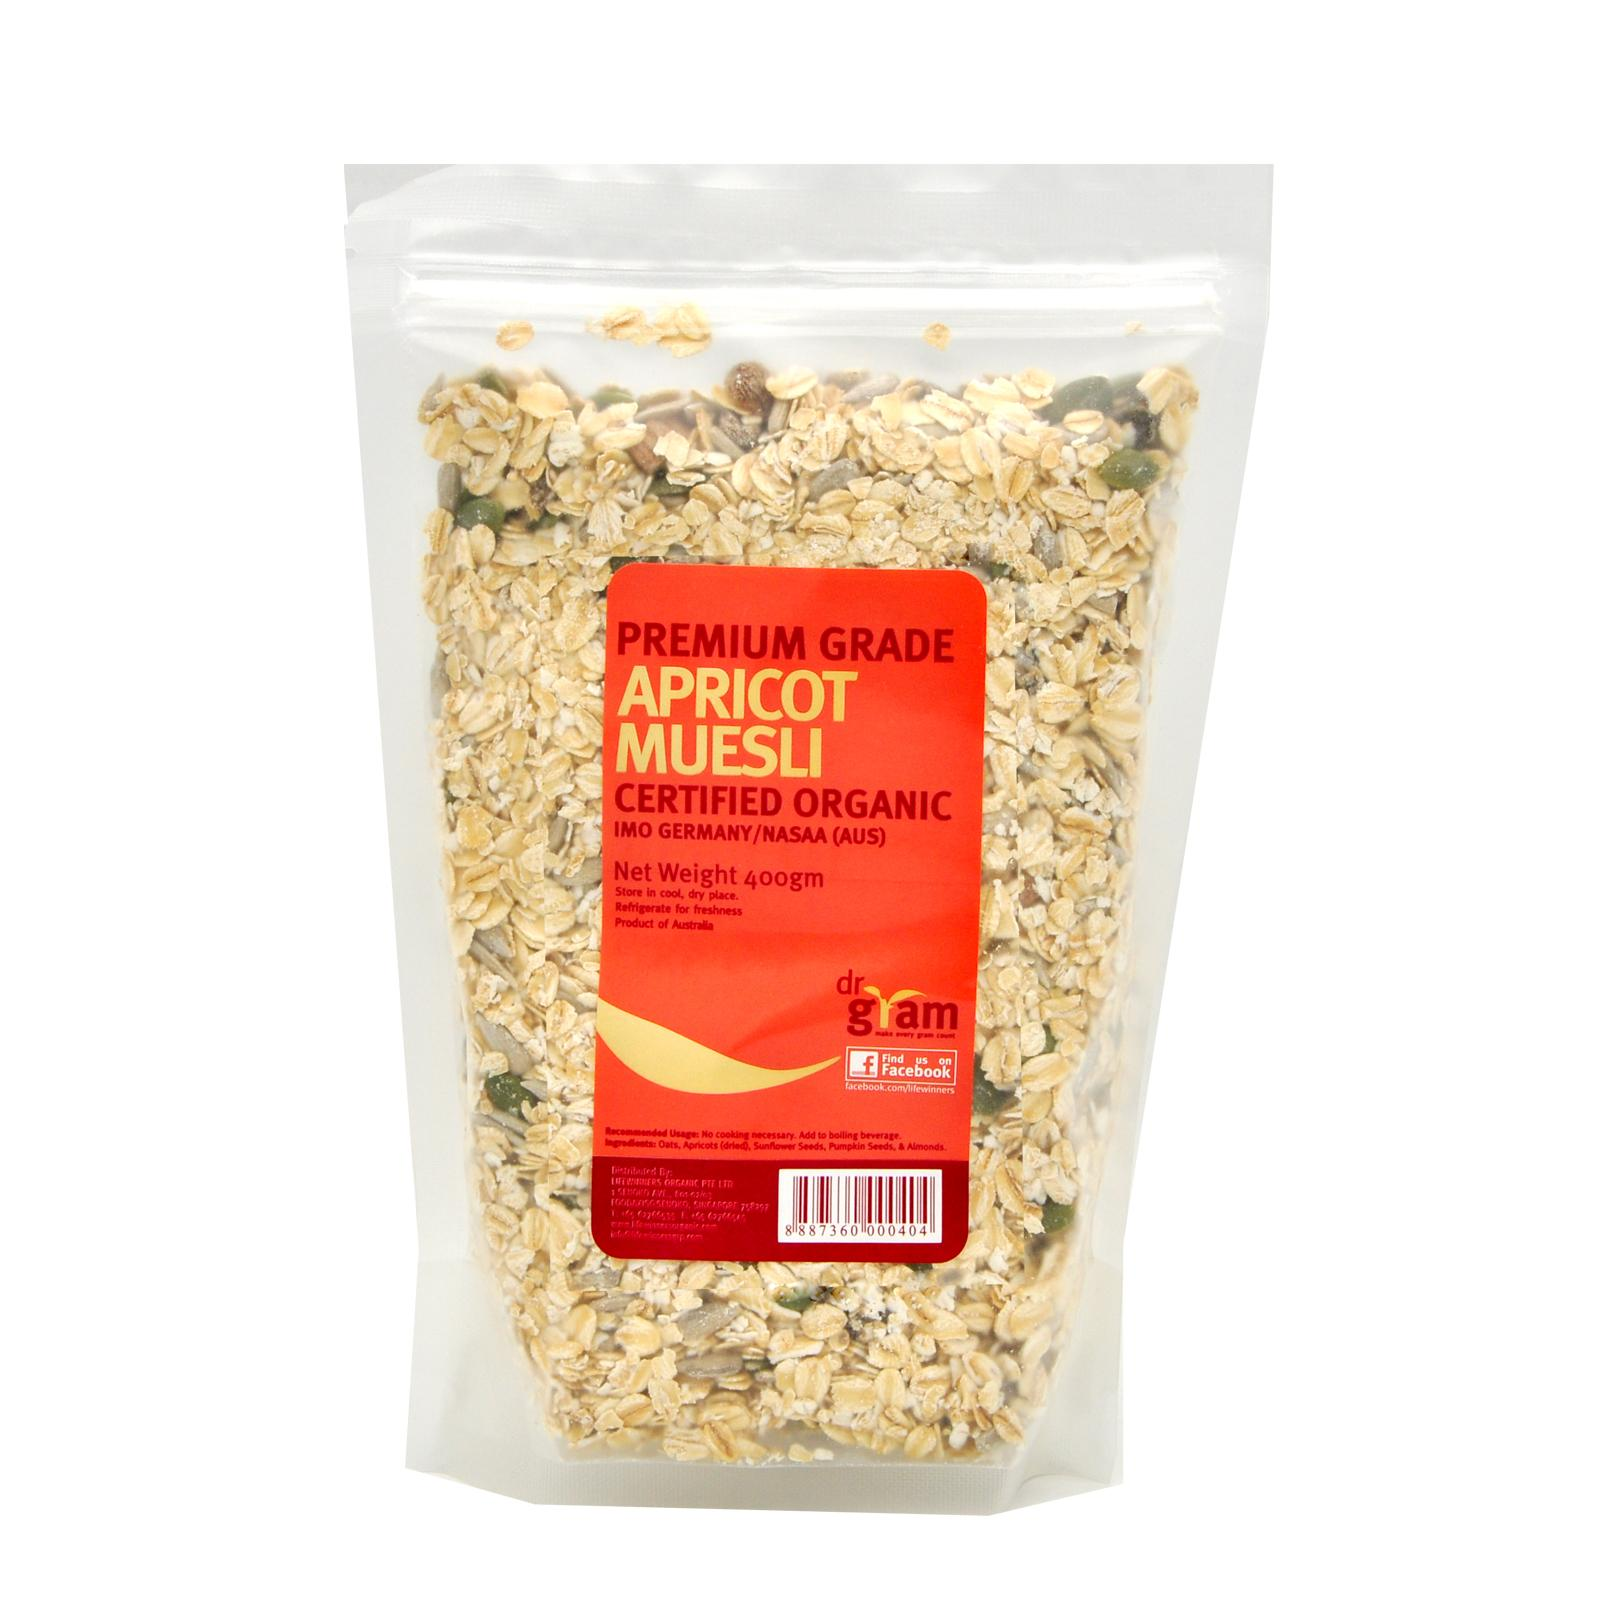 Dr Gram Organic Apricot Muesli 400g (3 Packets) By Lifewinners Organic & Fine Foods.